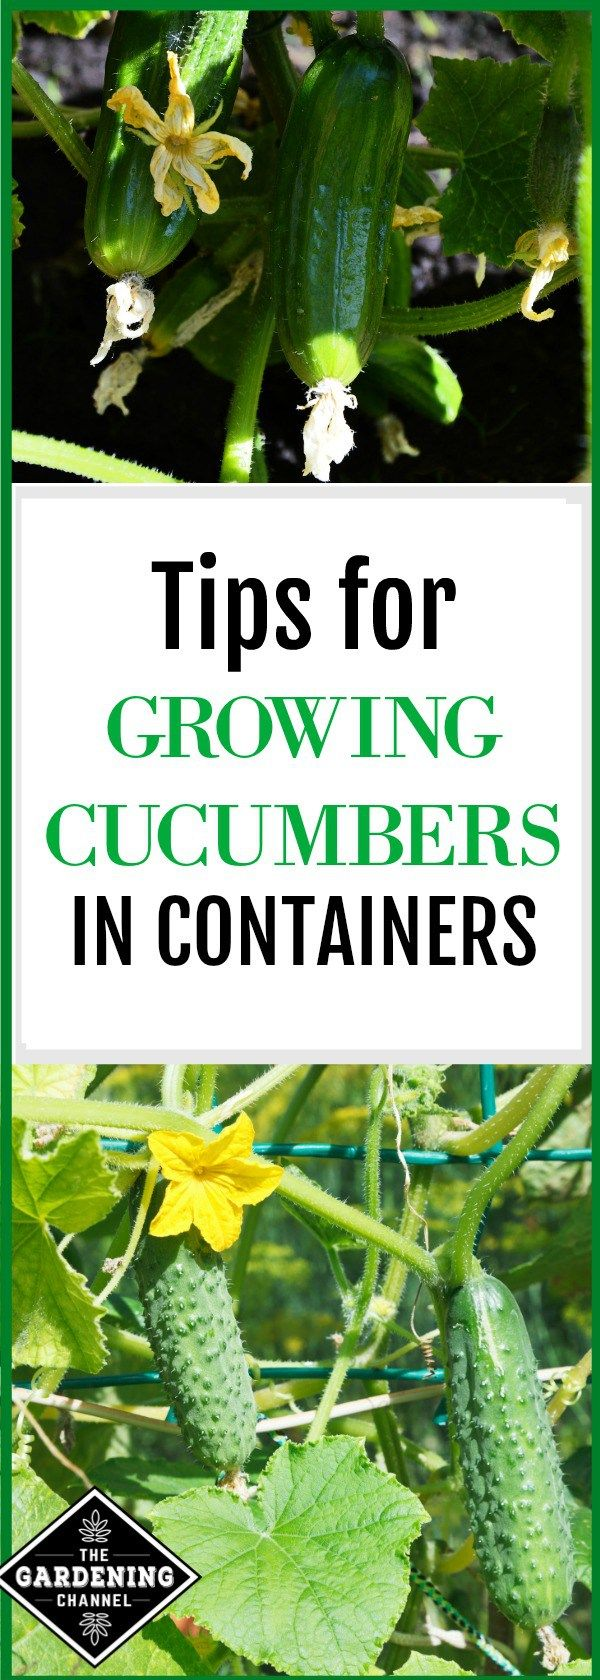 Growing cucumbers in containers. Follow these tips and you can grow cucumbers easily any place in your garden with 6 hours of sun.